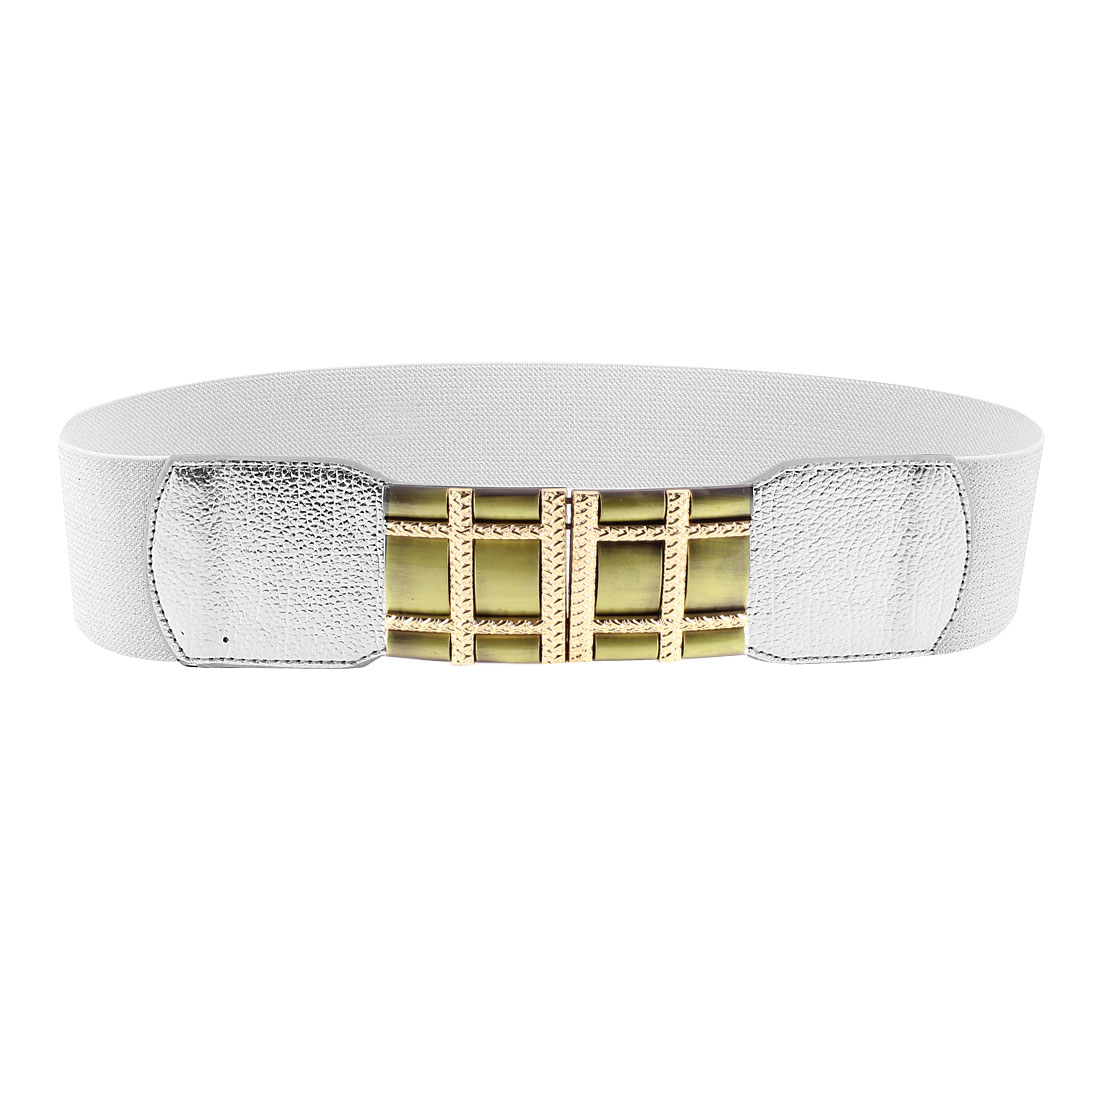 Lady 6cm Width Interlocking Buckle Silver Tone Elastic Cinch Belt Band